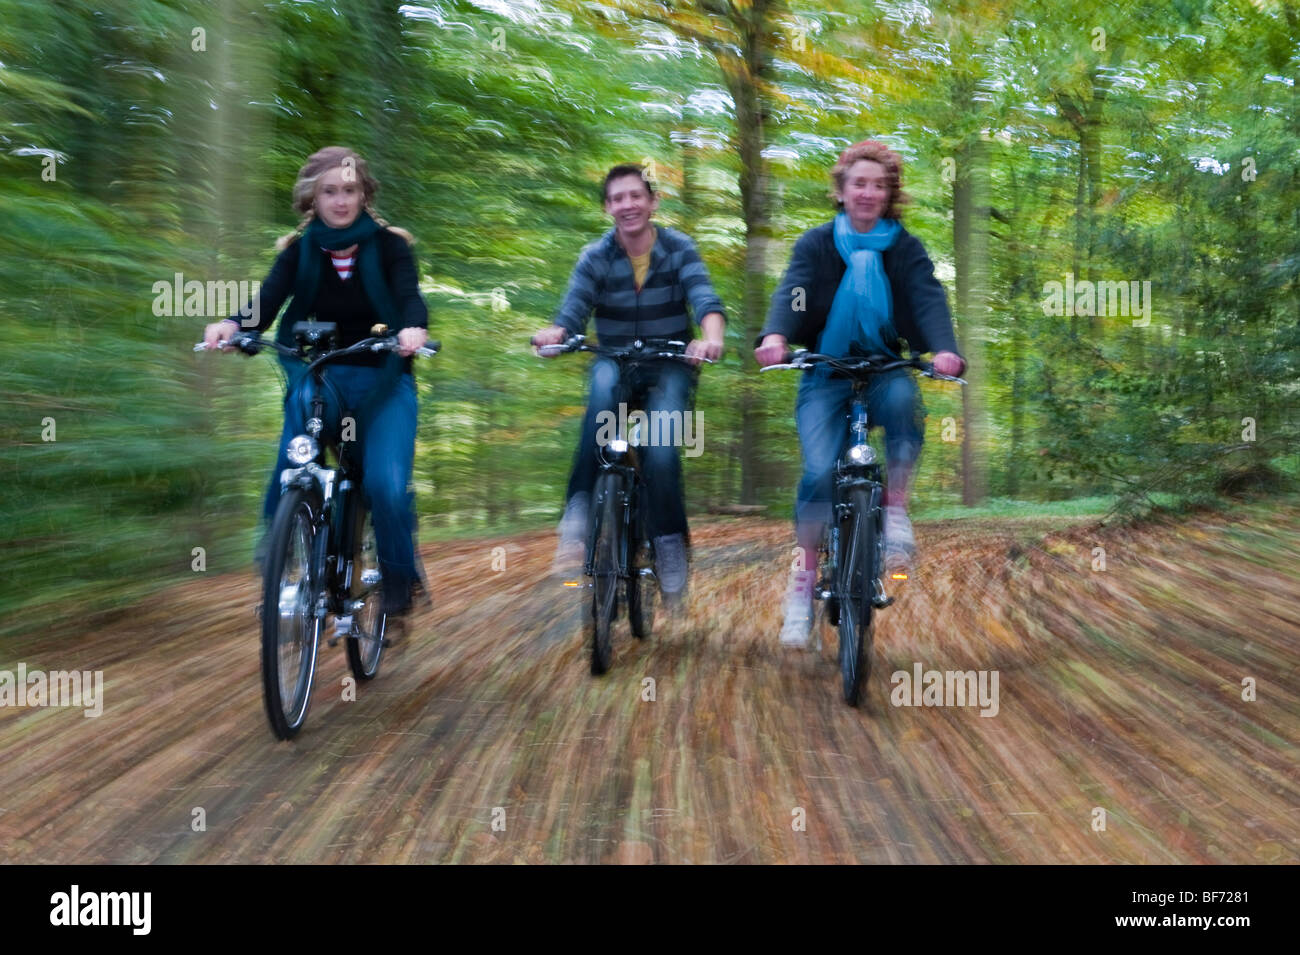 Three teenagers ride their electric bikes along a woodland track in autumn (motion blur) - Stock Image